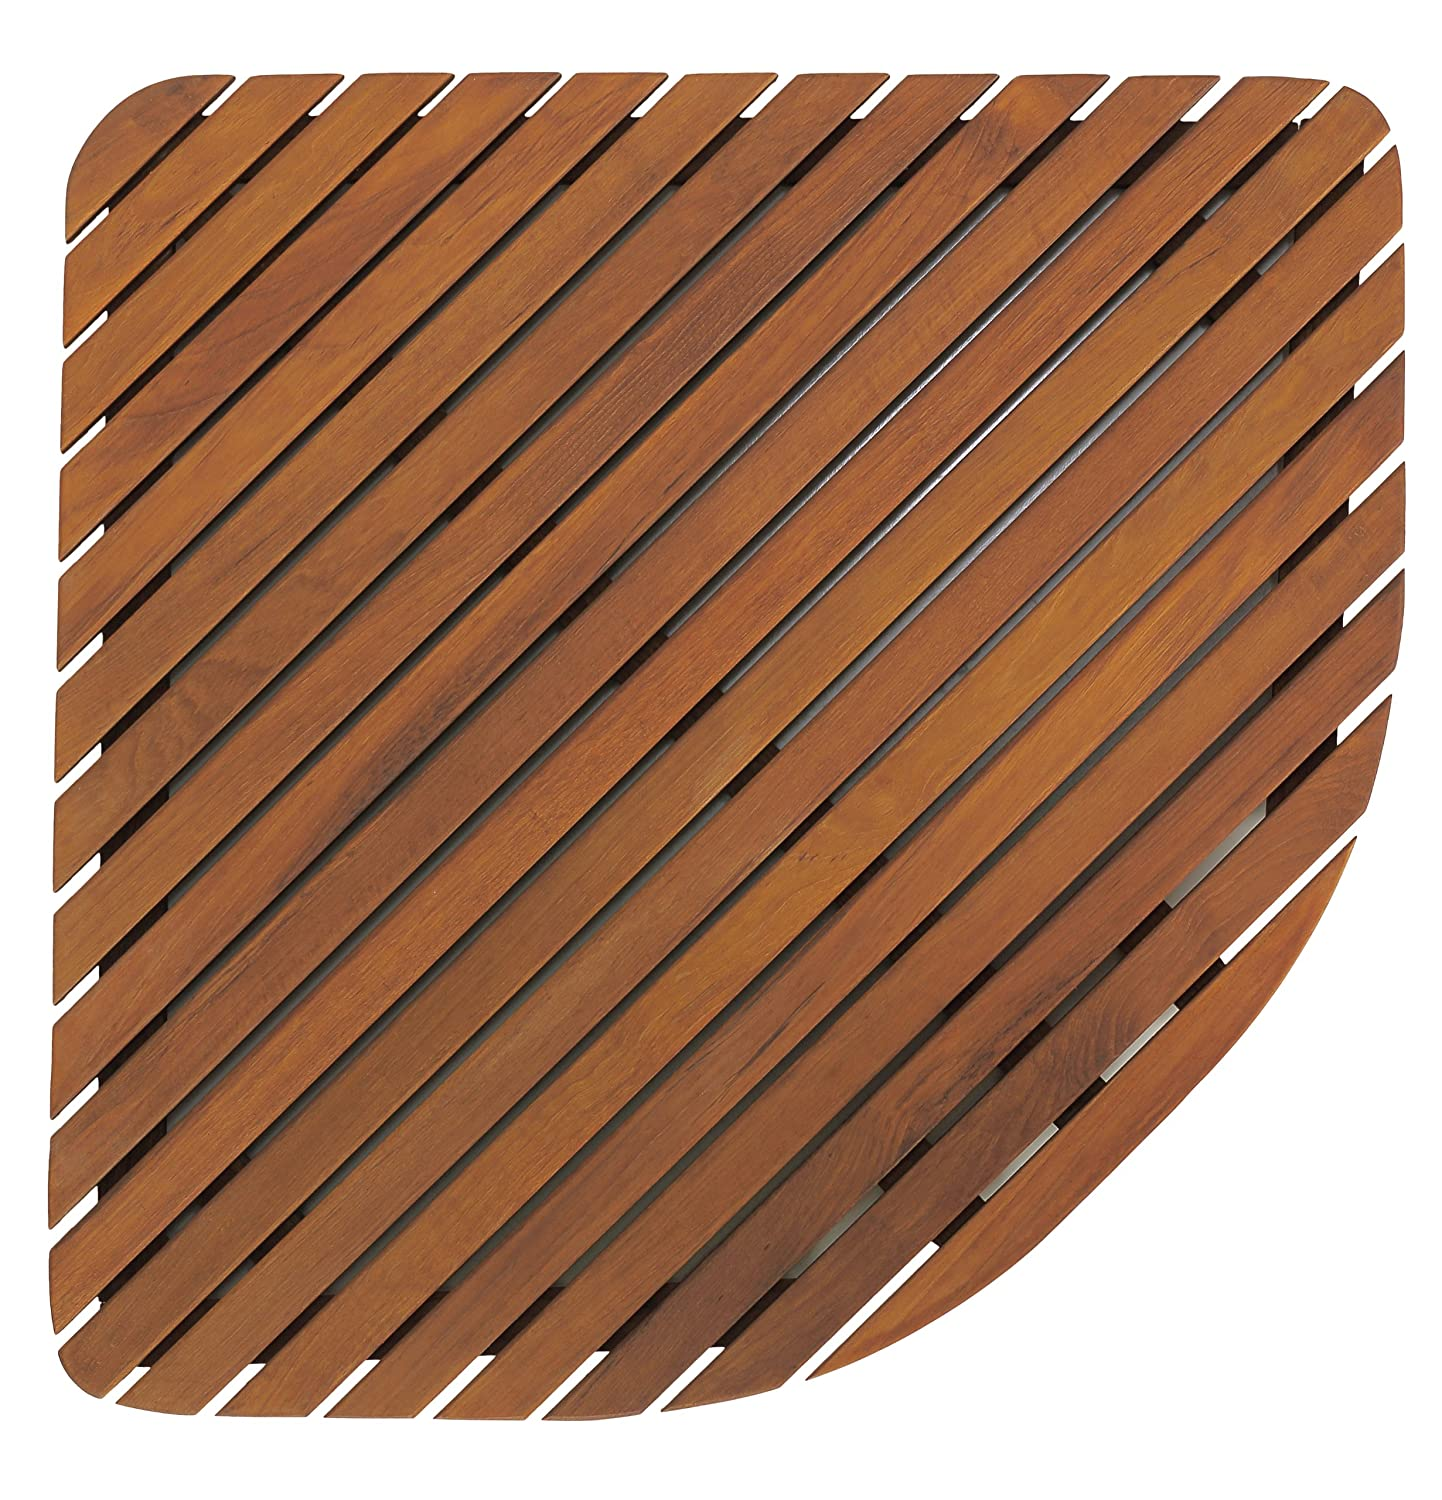 Bare Decor Dania Corner Shower Spa Mat, 24 by 24-Inch, Solid Teak Wood and Oiled Finish BARE-WF2042